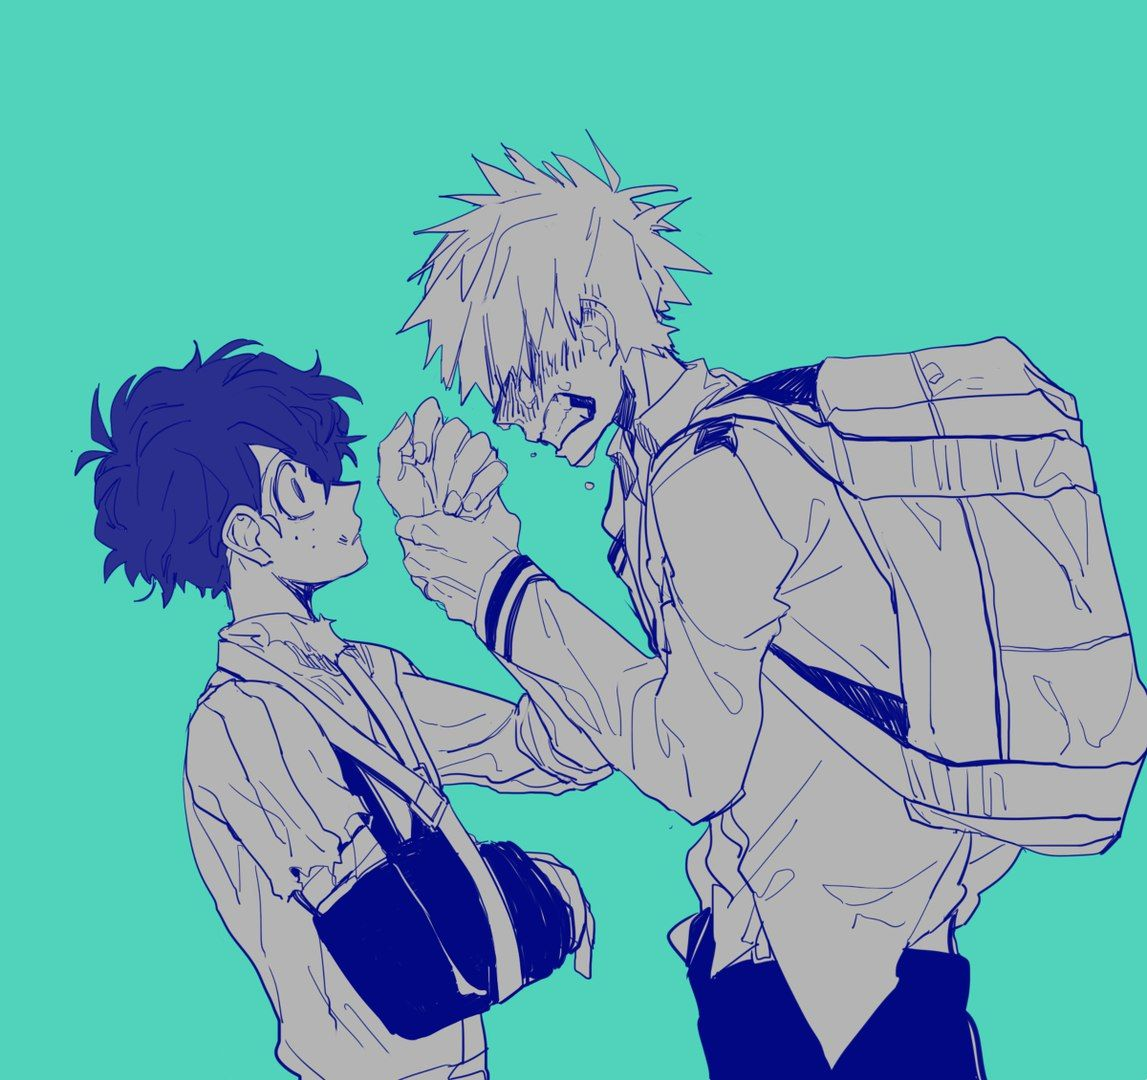 Pin by Animefreak on Boku no hero academia | My hero academia 2